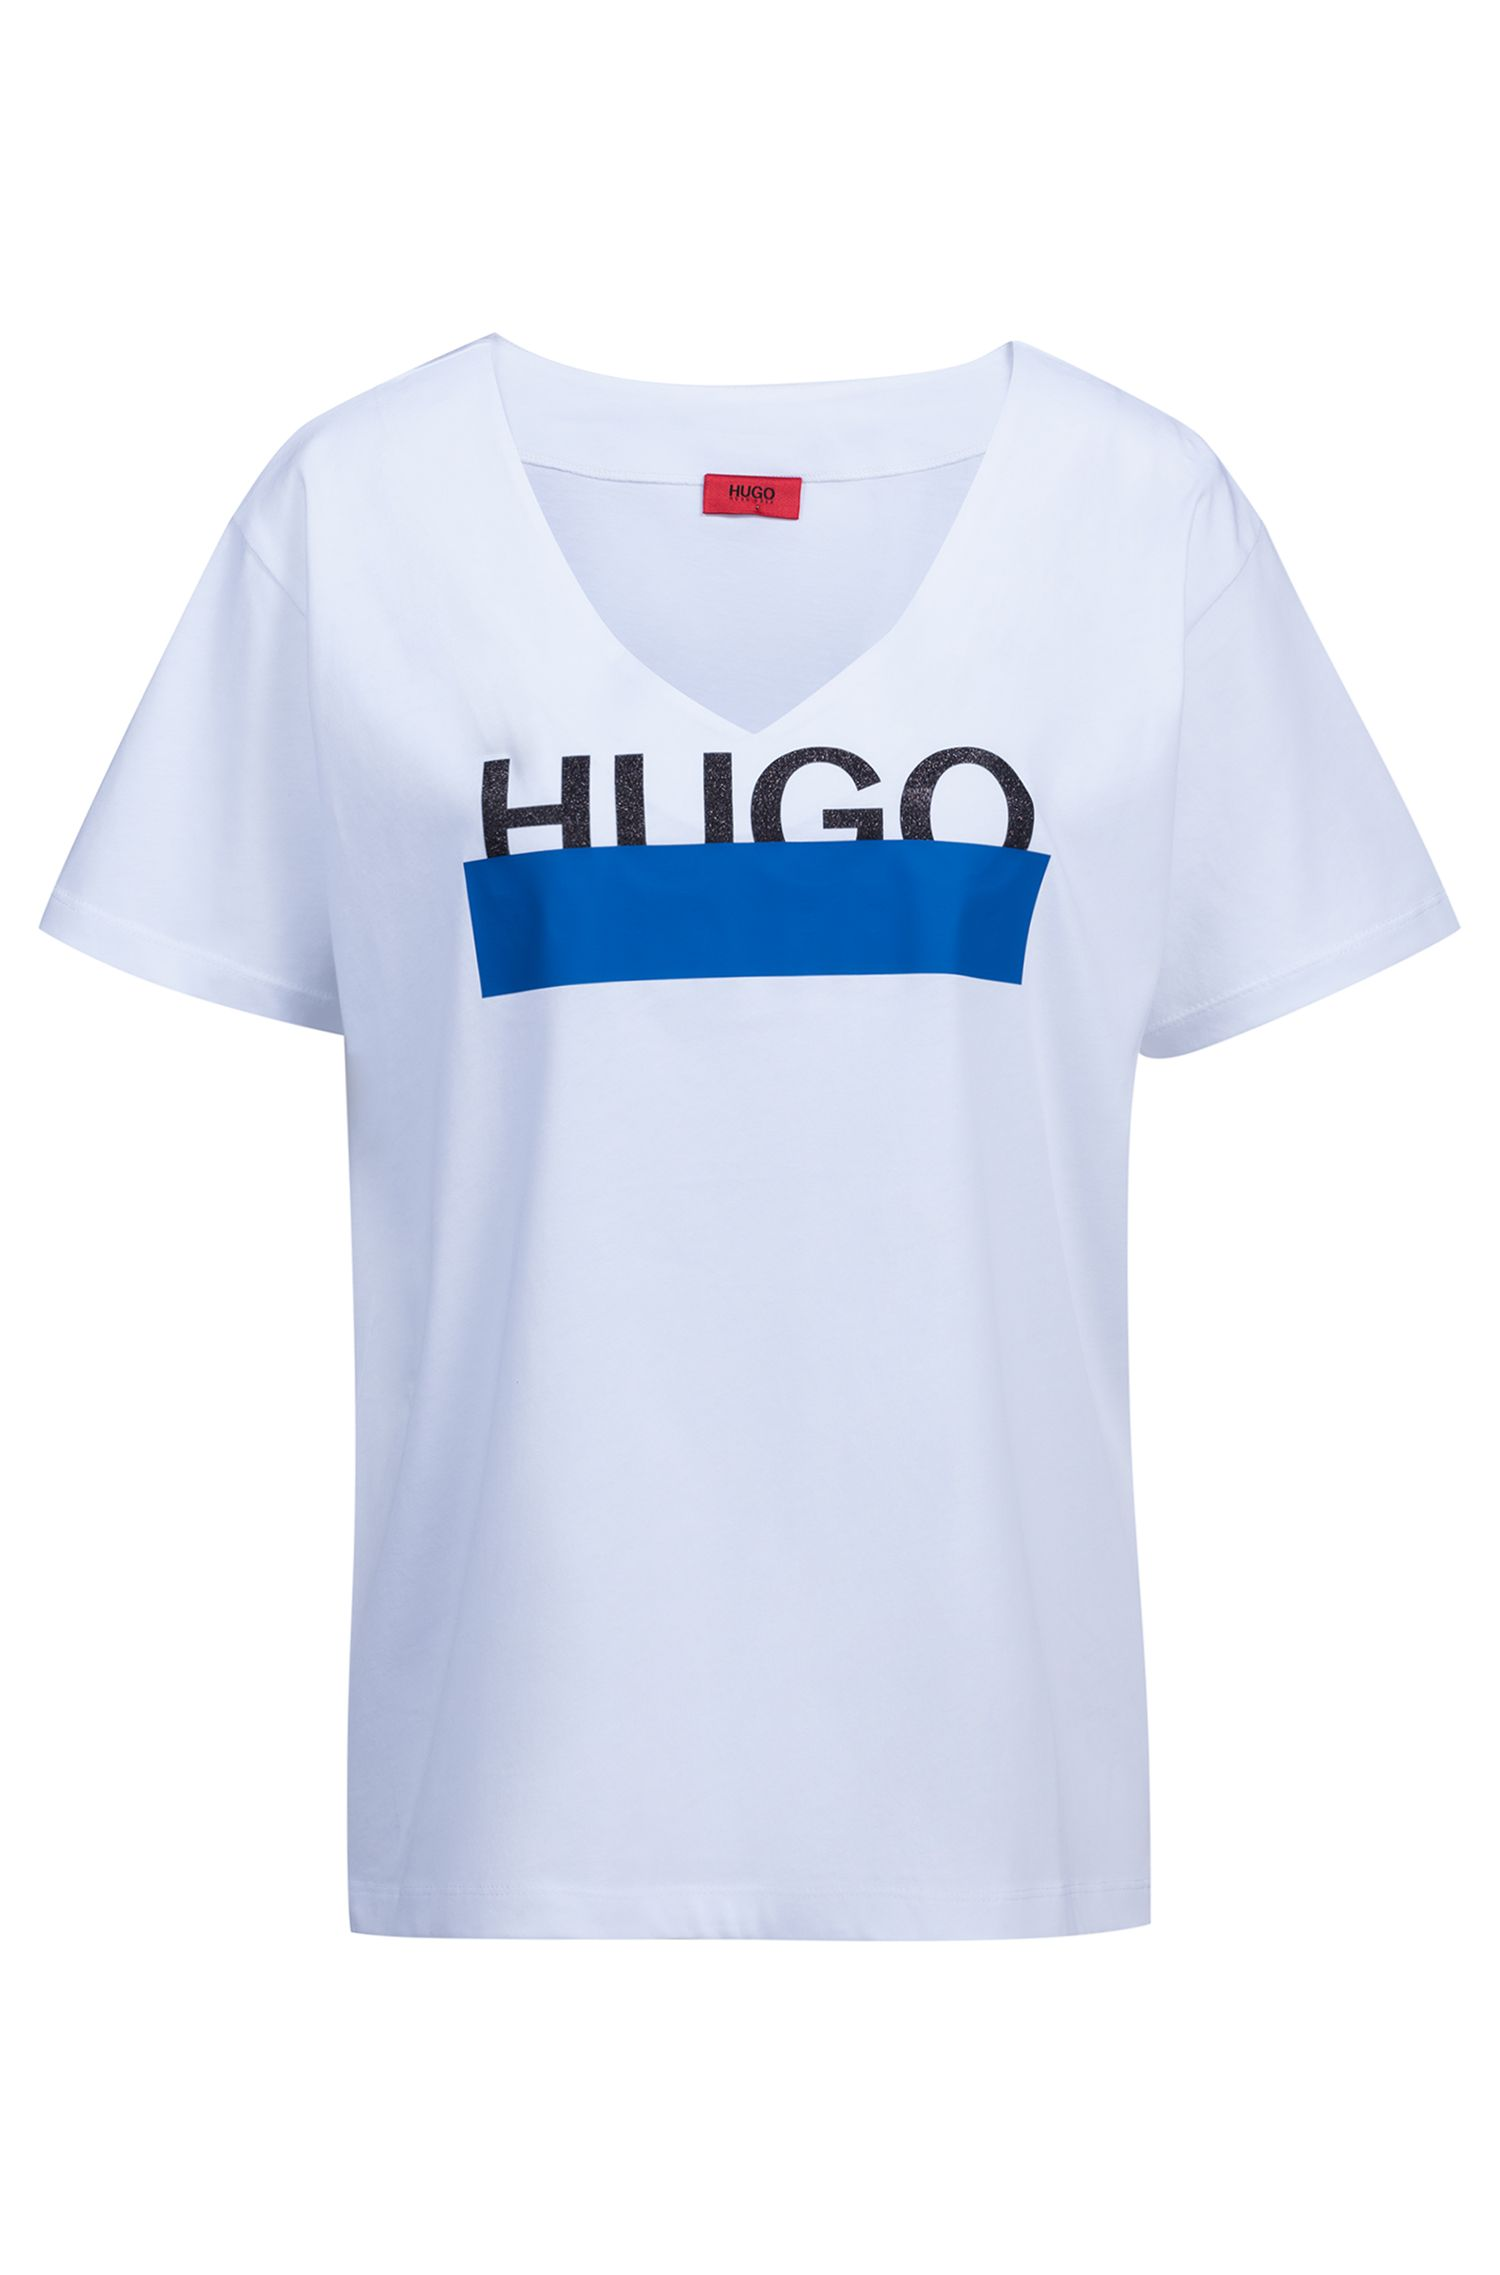 Camiseta relaxed fit en algodón con logo estampado brillante , Blanco